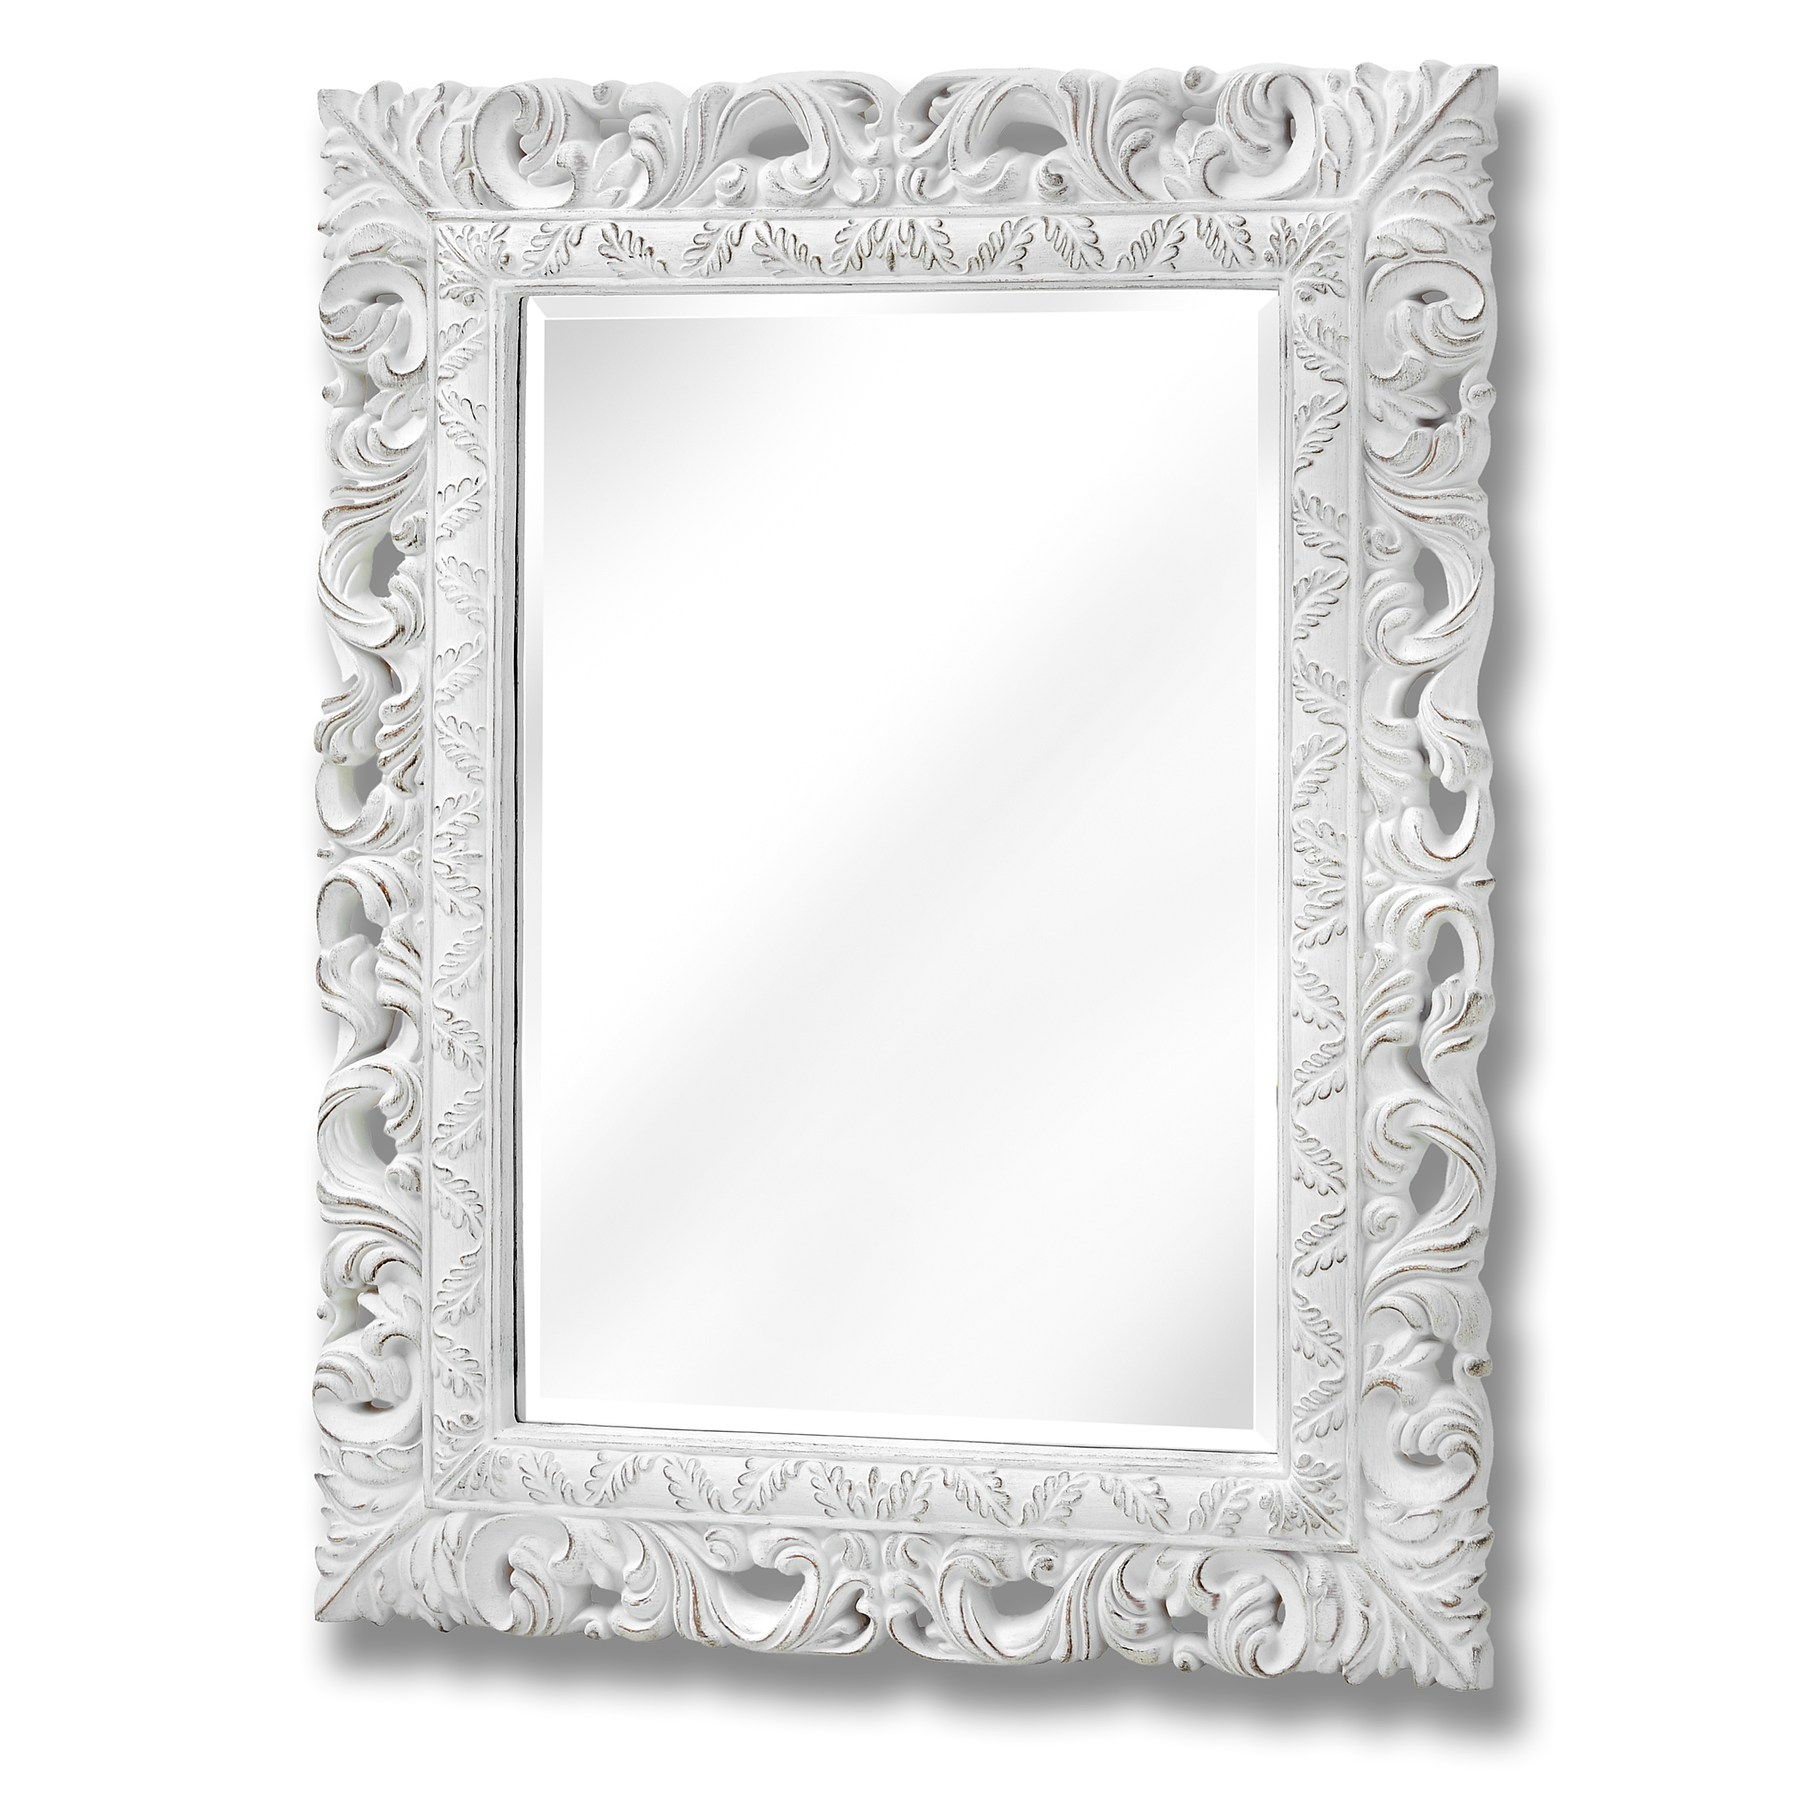 Mirrors Furniture From Baytree Interiors Throughout White Ornate Mirrors (Image 9 of 15)